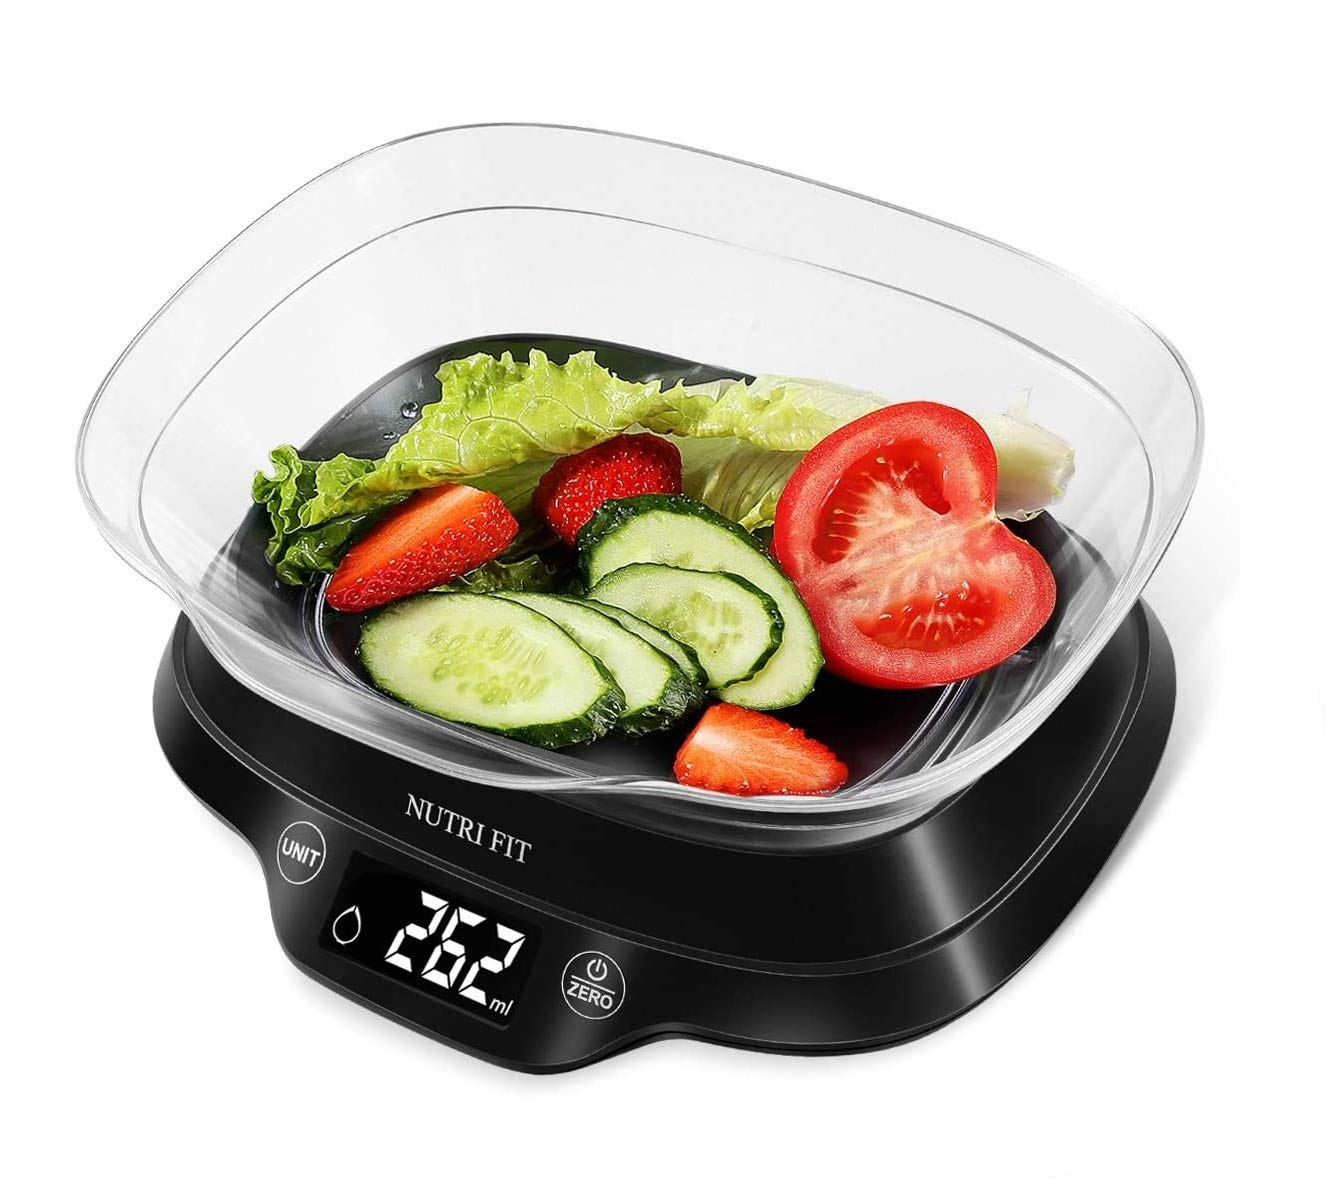 NUTRI FIT Digital Food Scale with Removable Bowl for Baking Cooking Dieting Max 11lb 0.1g Grams Backlight LCD Display Precise Weighting (Batteries Included)-Black